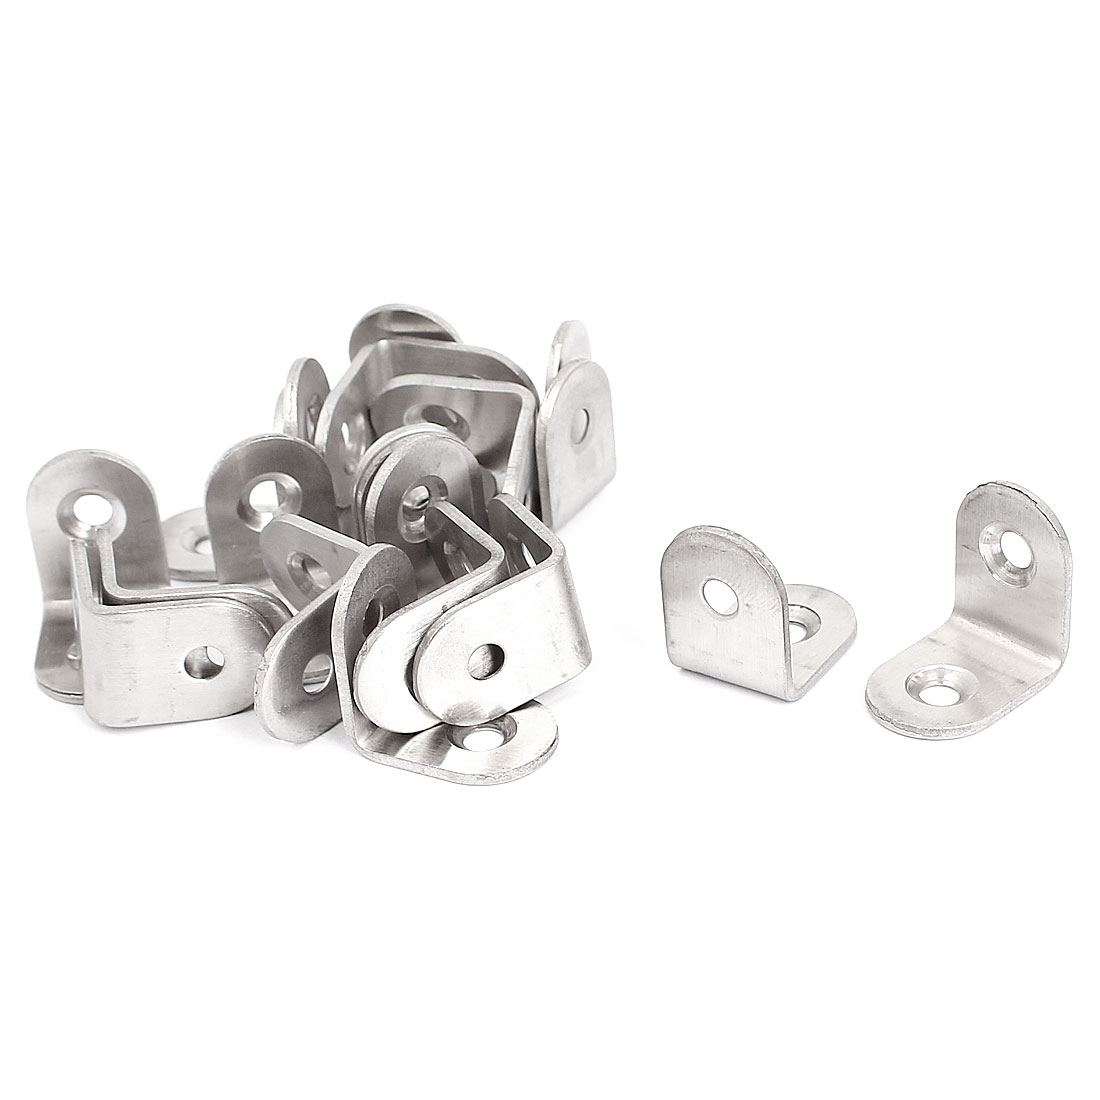 Furniture Table 20x20mm L Shaped Angle Brackets Corner Braces Supports 20pcs